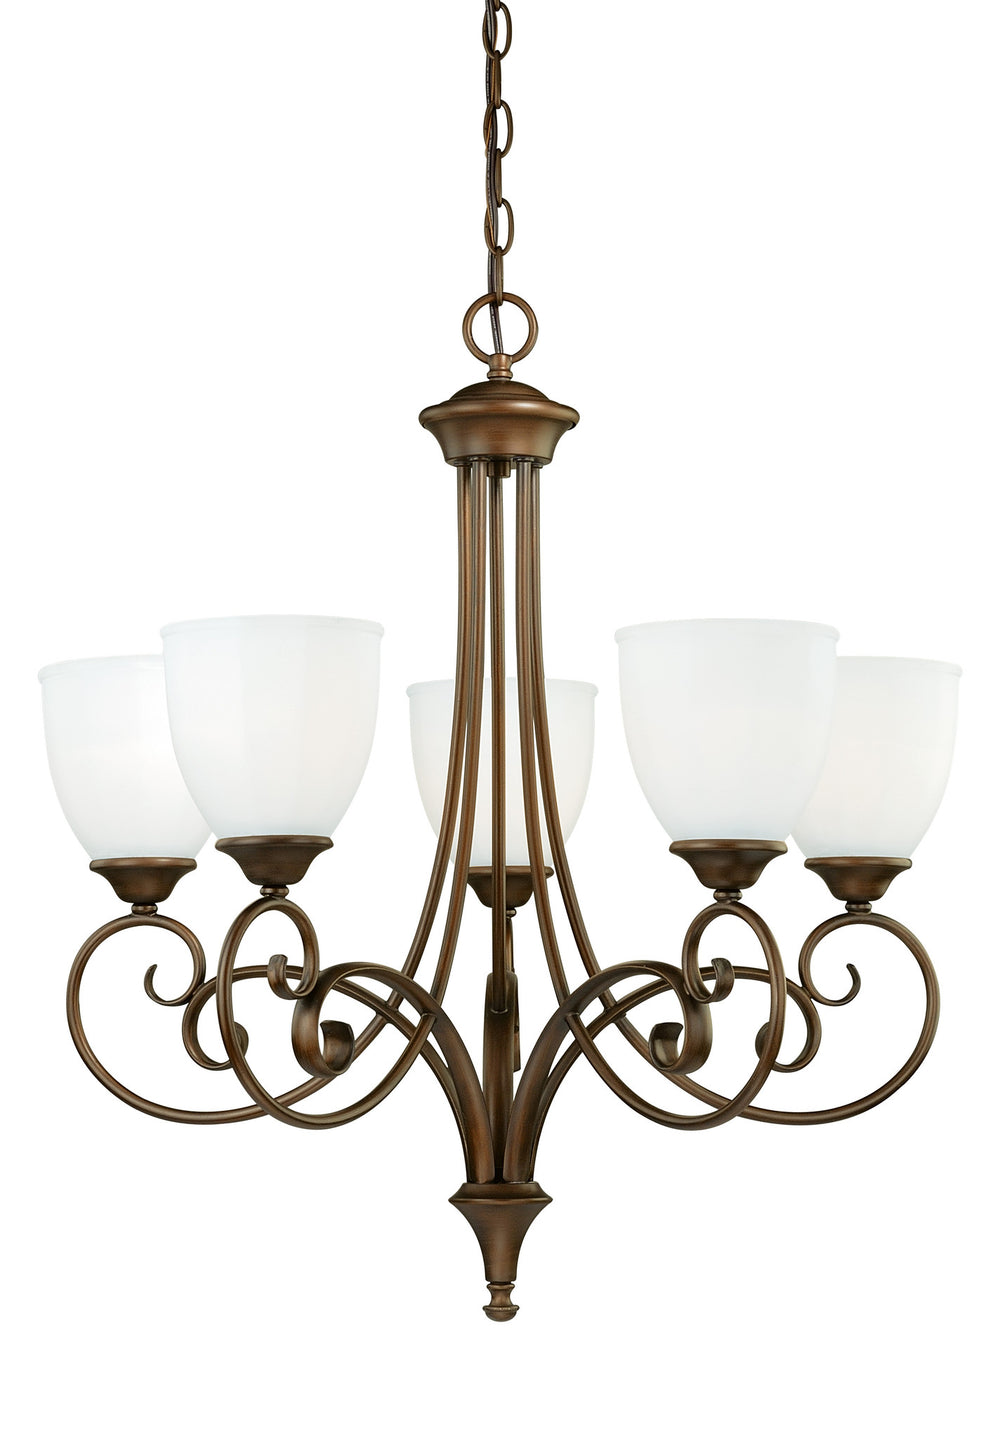 Buy H0082 Vaxcel Claret 5L Chandelier Venetian Bronze from LightingOriginals.ca